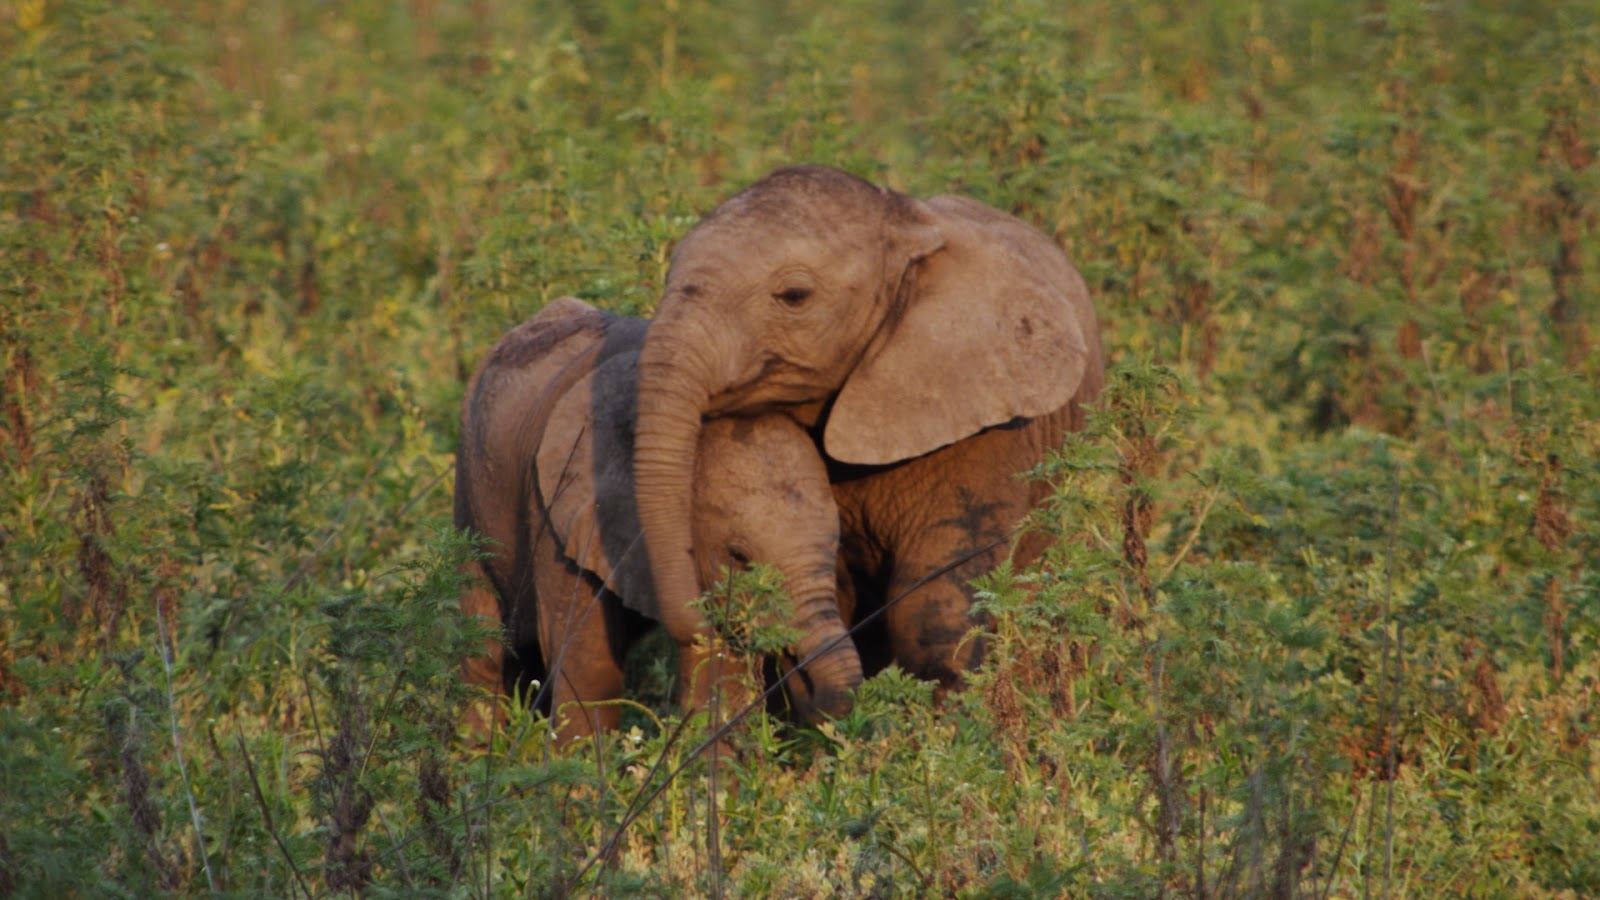 Two elephants in Mozambique